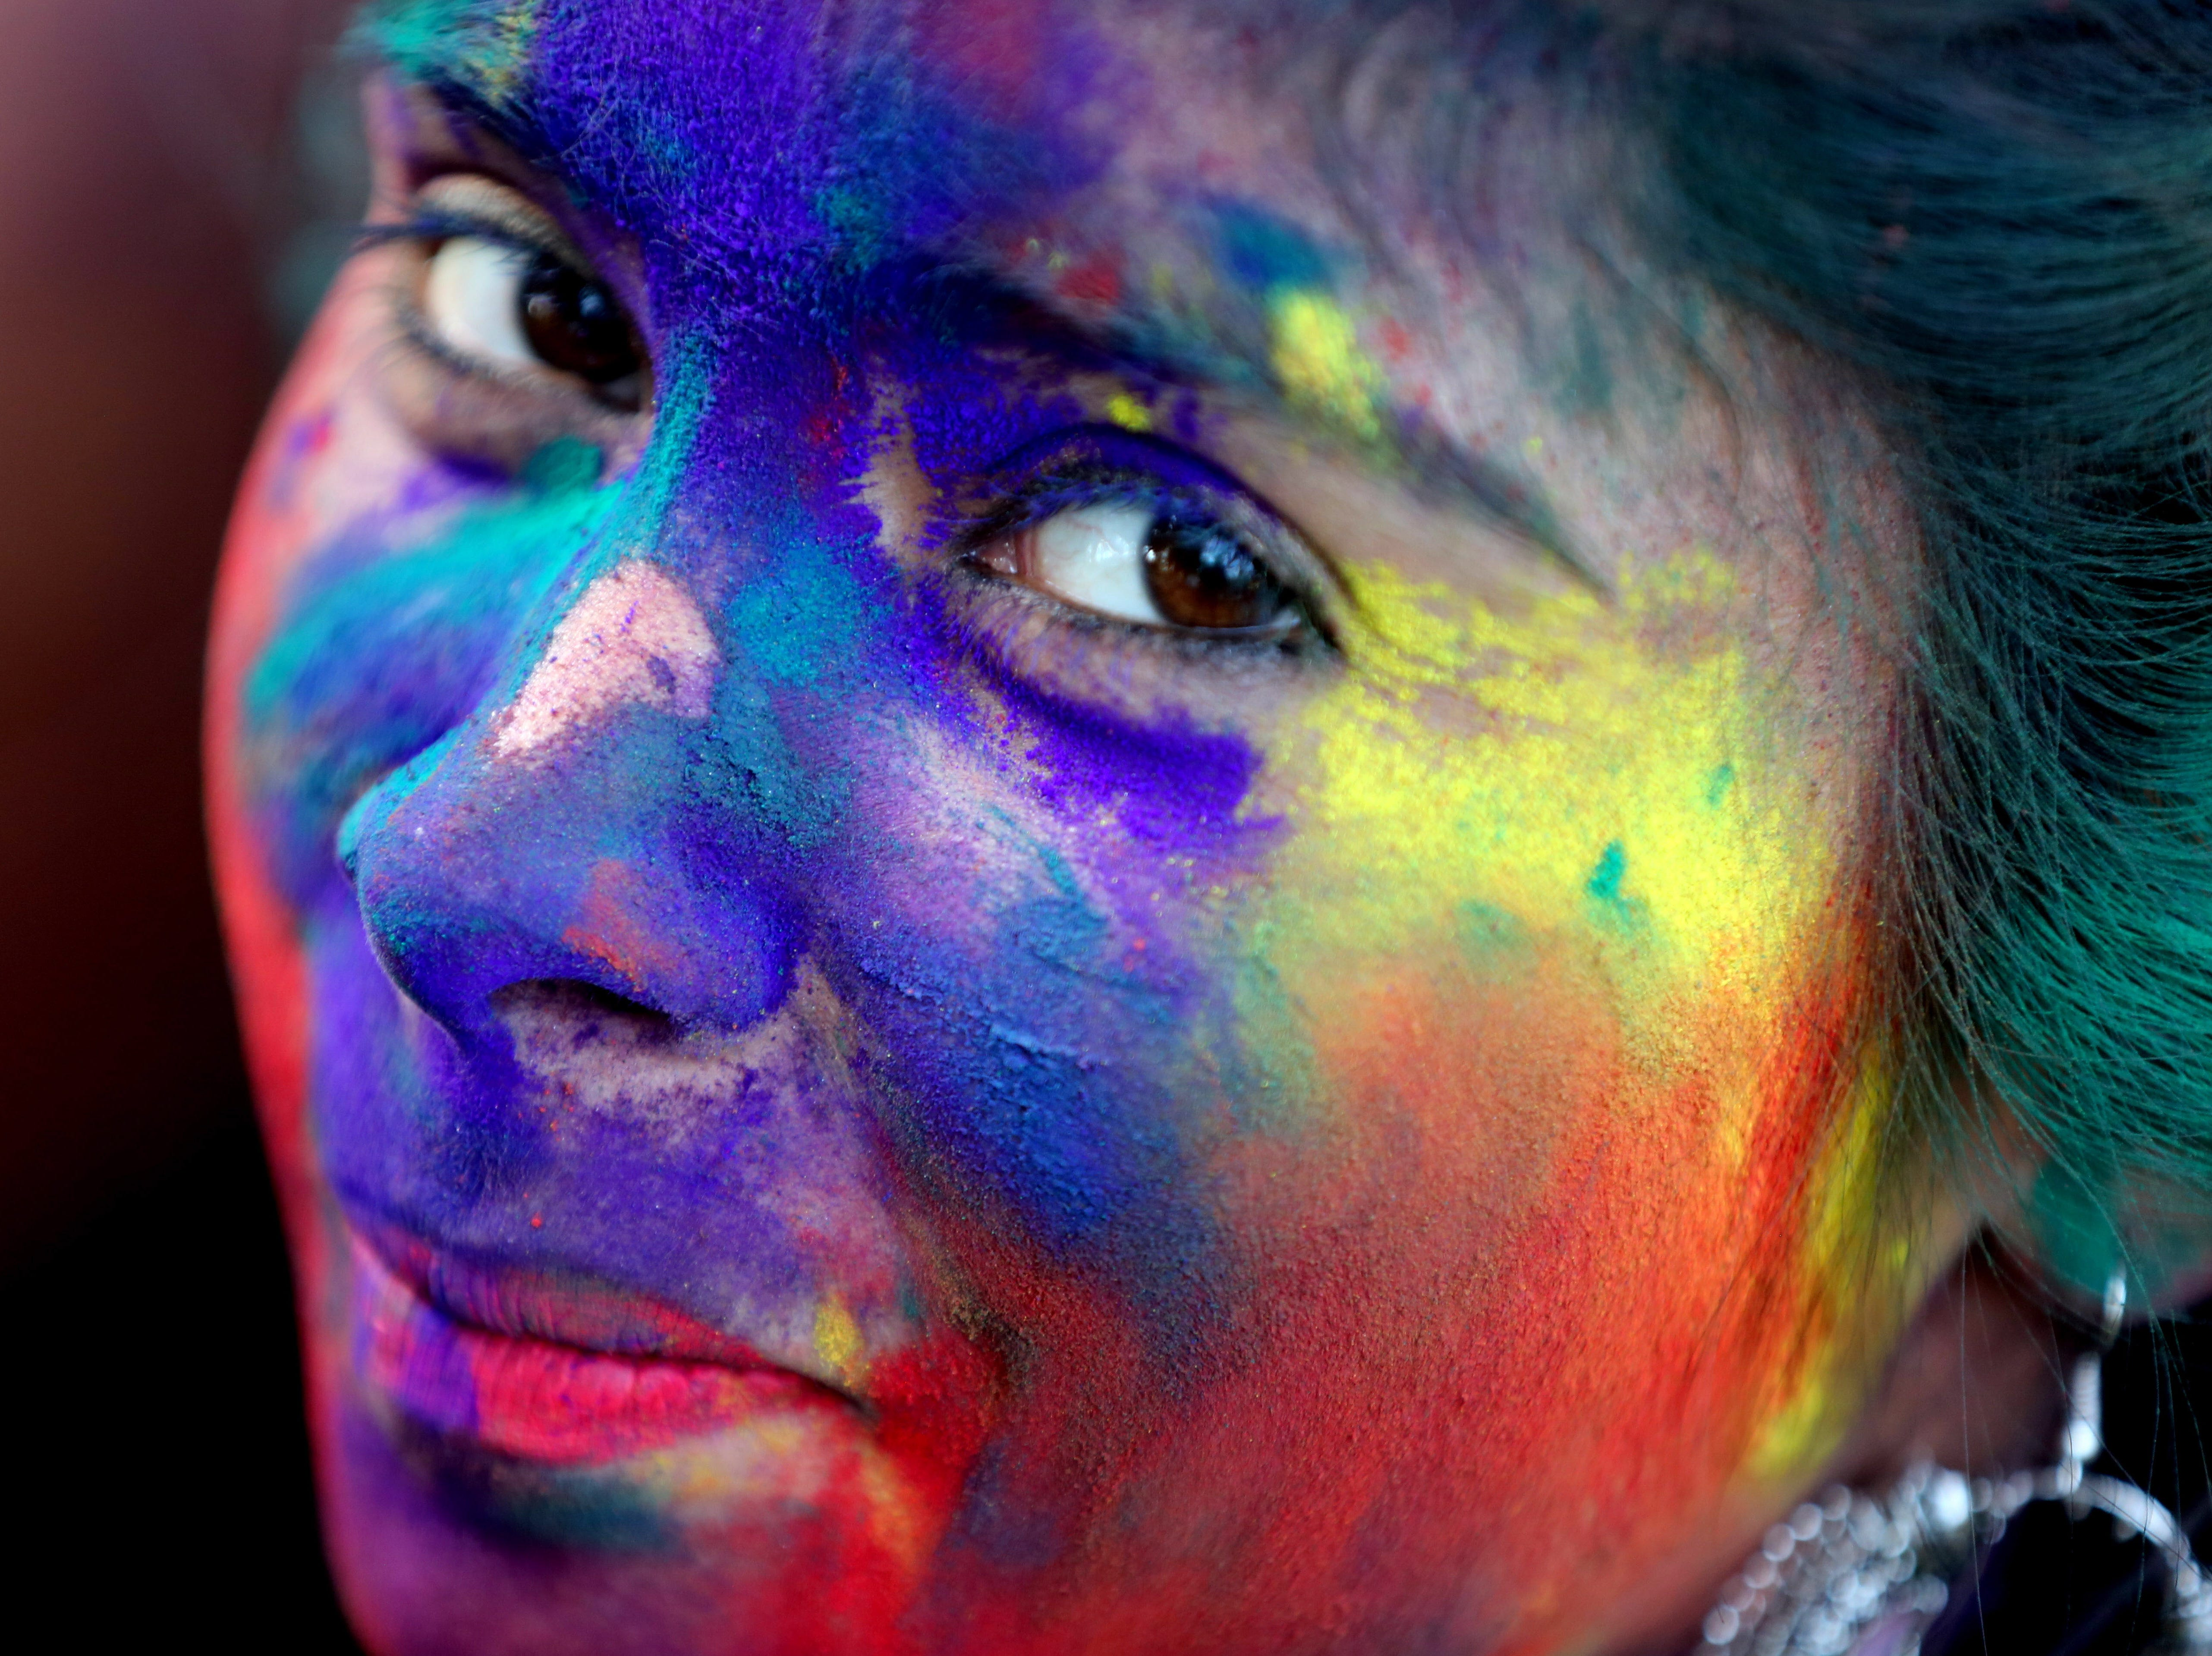 A girl takes part in the Holi festival celebrations in Bhopal, India on March 19, 2019. Holi is celebrated on the full moon day and marks the beginning of the spring season. Holi will be celebrated as the Hindu spring festival of colors across the country on March 21.